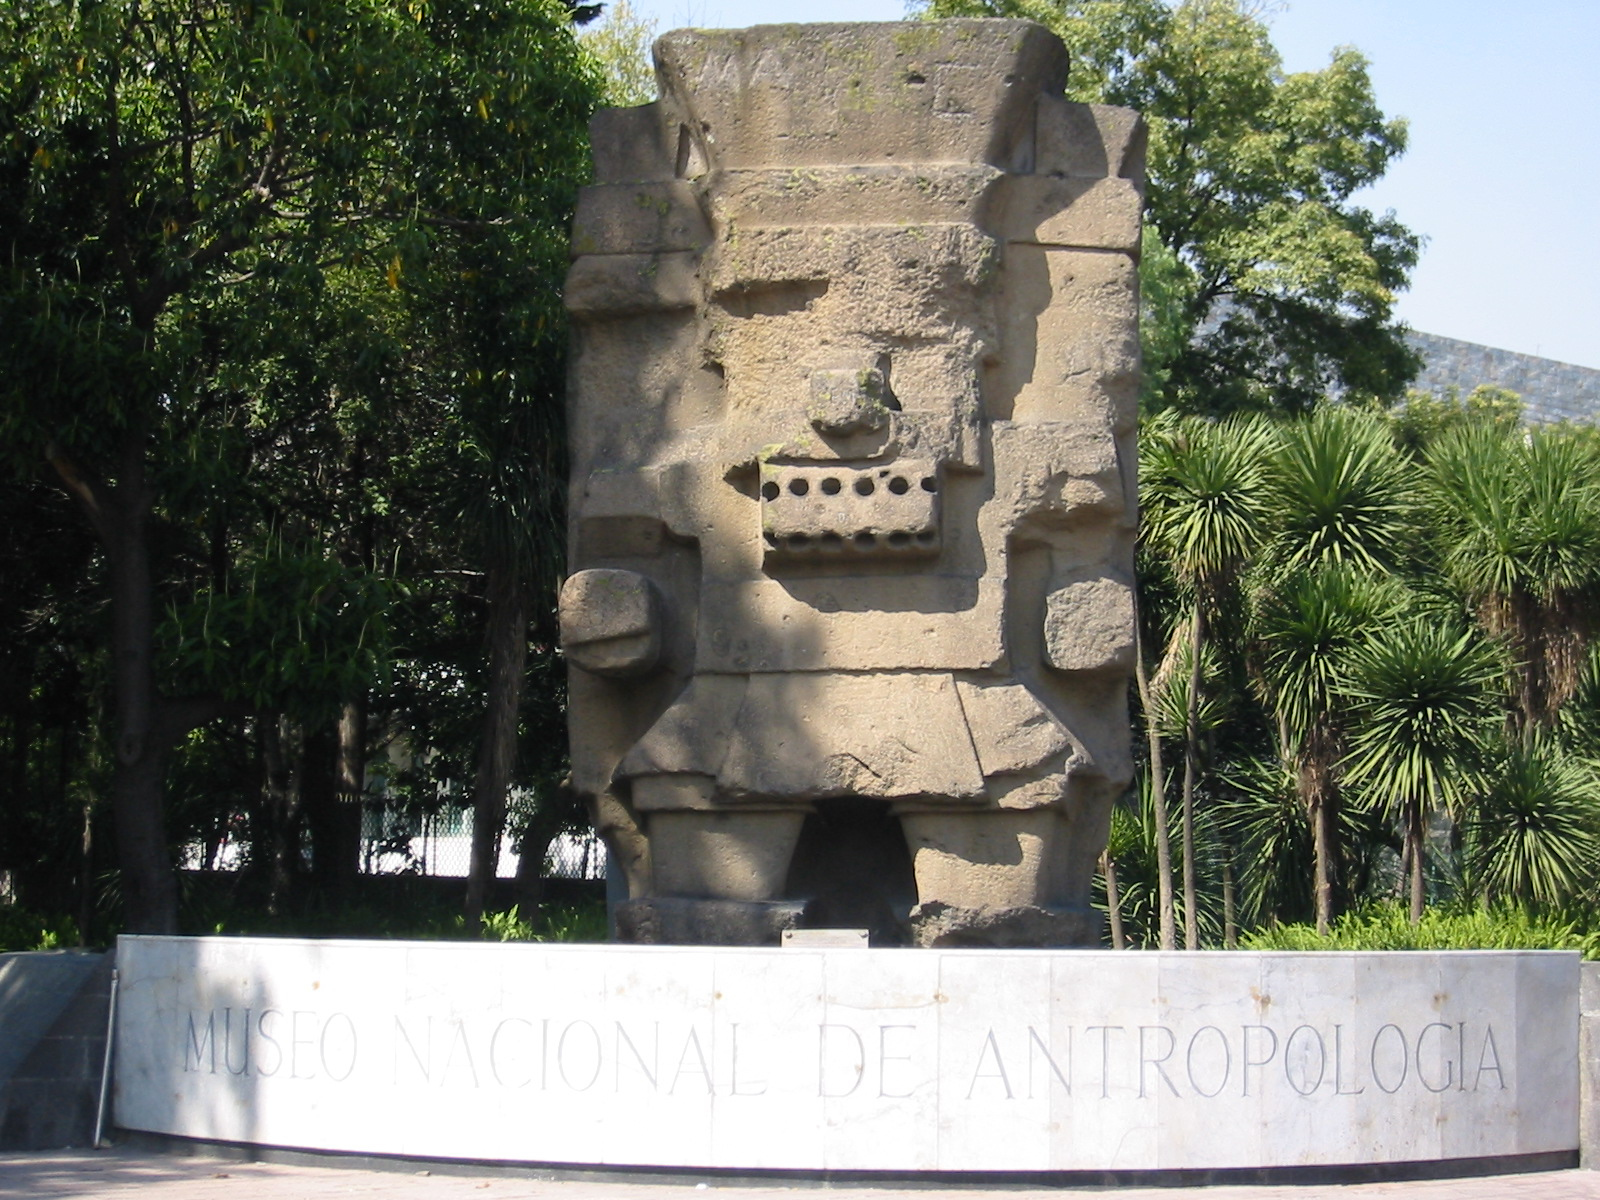 https://upload.wikimedia.org/wikipedia/commons/a/a4/National_Museum_of_Anthropology-mexico.jpg